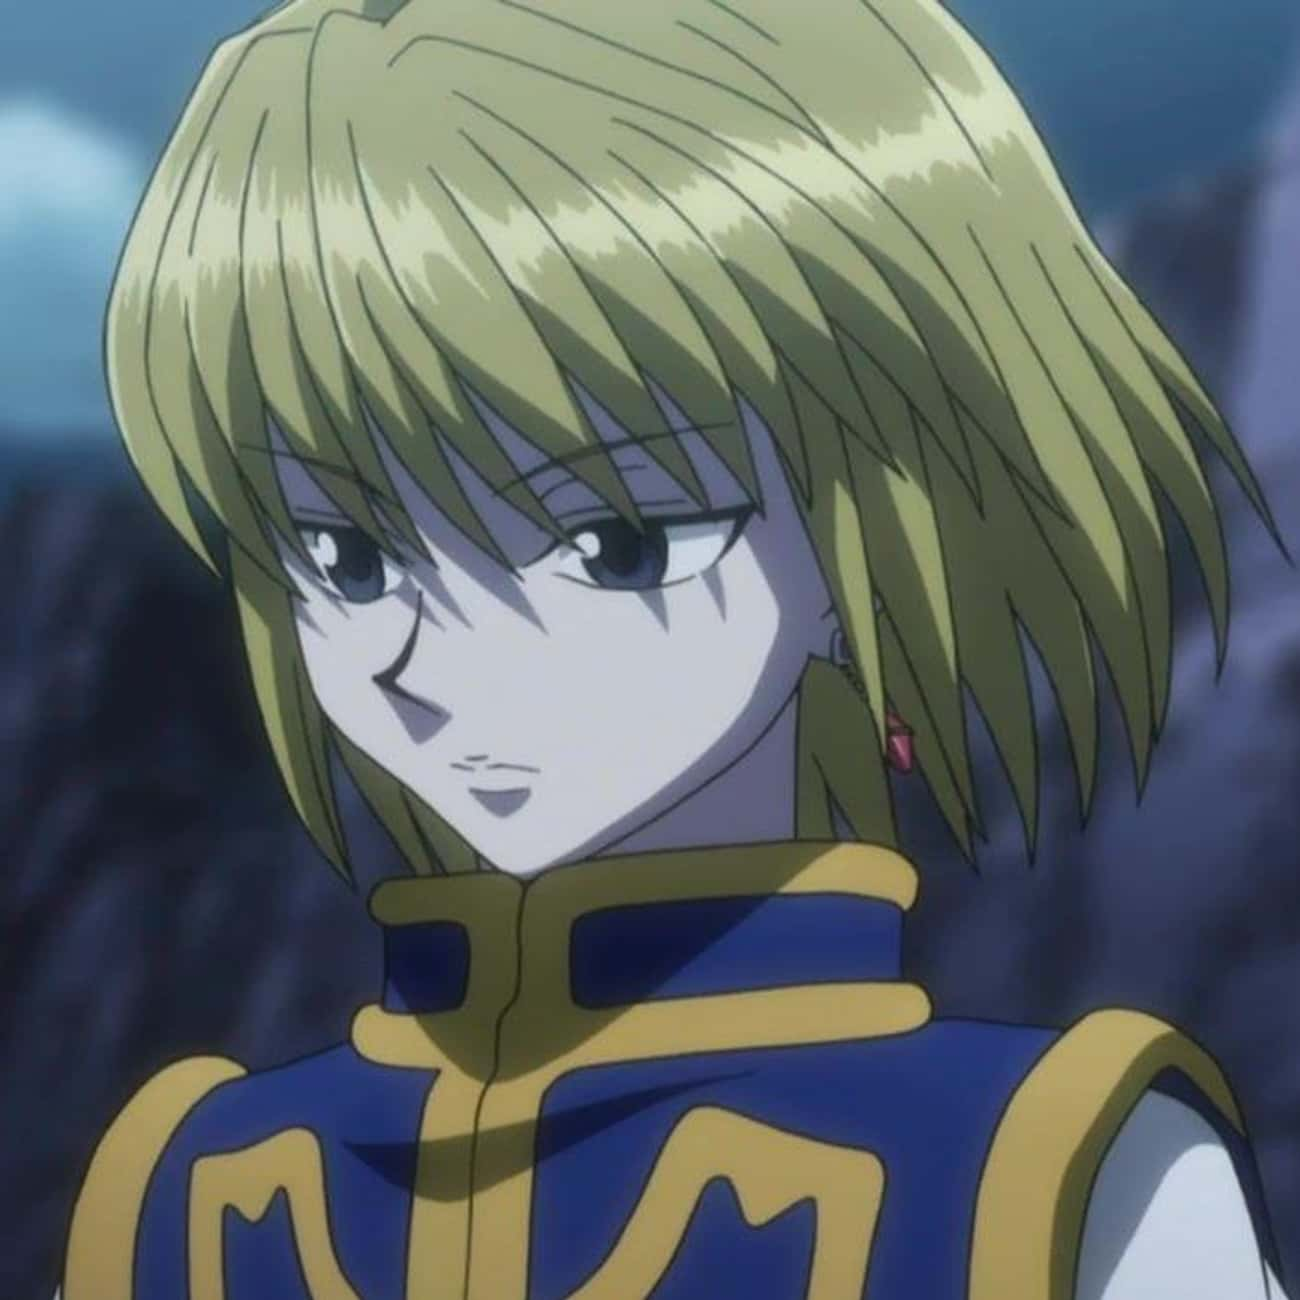 Why People Keep Talking and Ke is listed (or ranked) 1 on the list The Best Kurapika Quotes from Hunter x Hunter